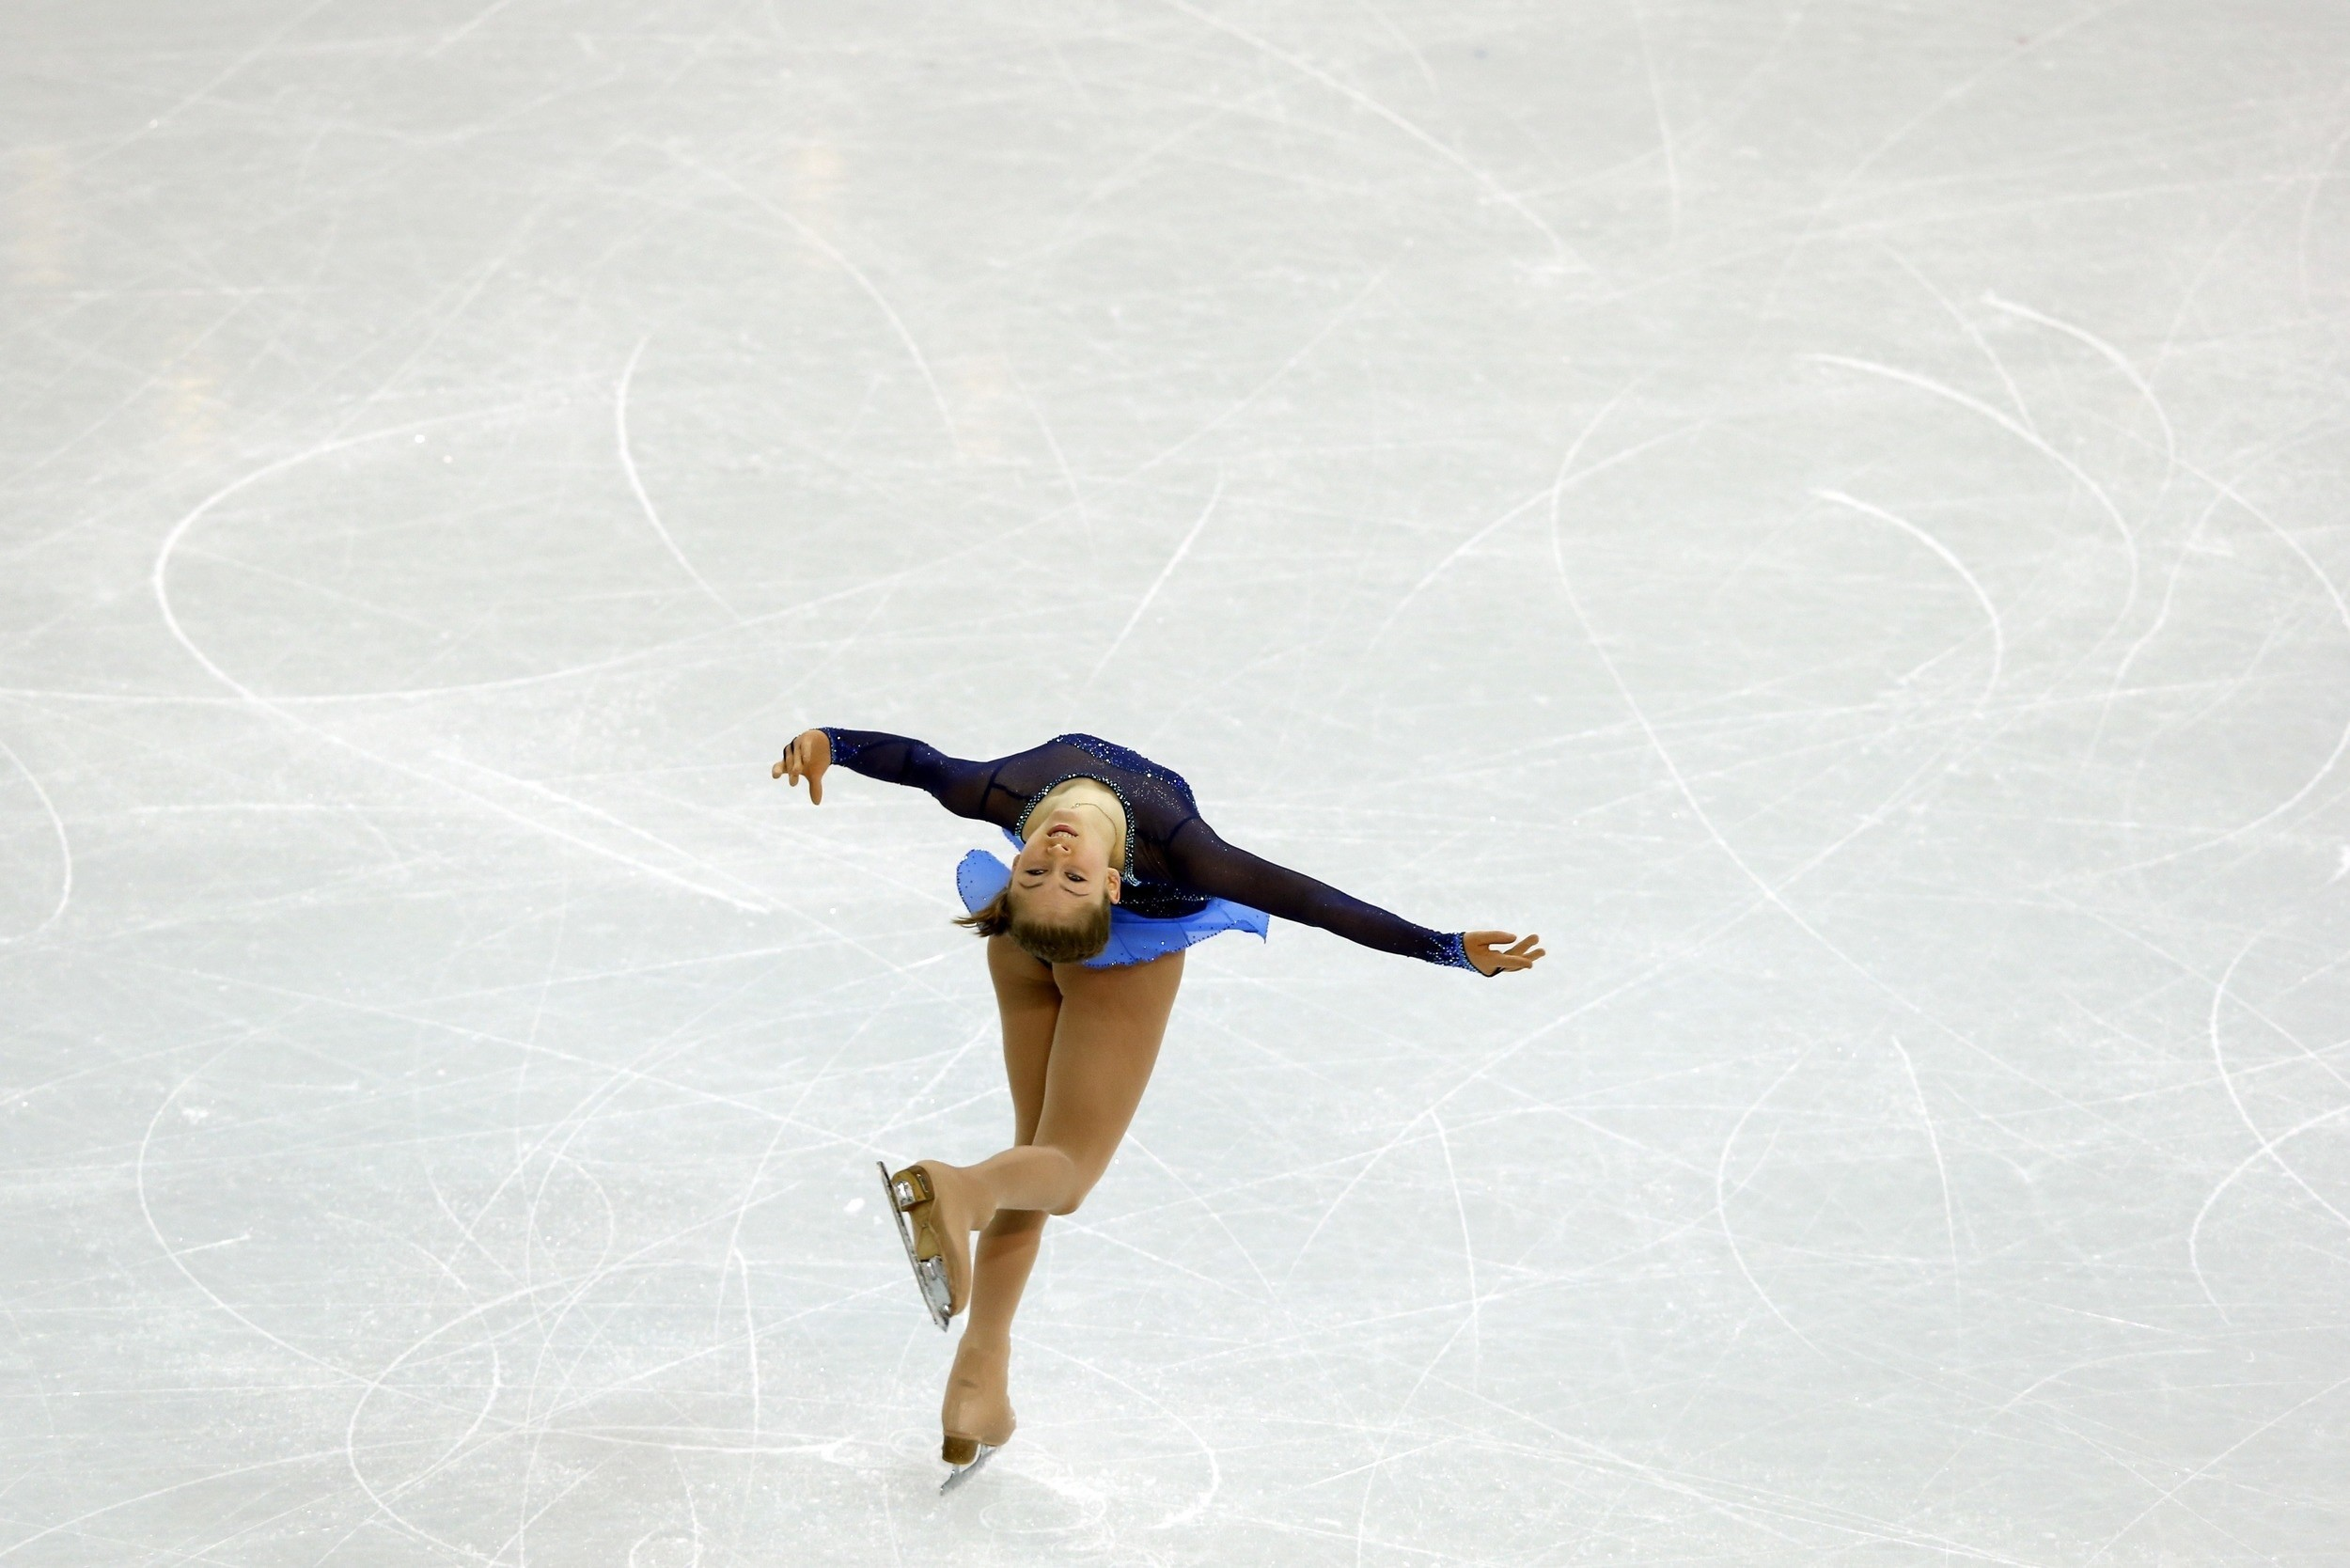 Res: 2500x1668, Download wallpaper figure skating, ice, skater, julia lipnitsky with  resolution 720 x 1280 and # 12111